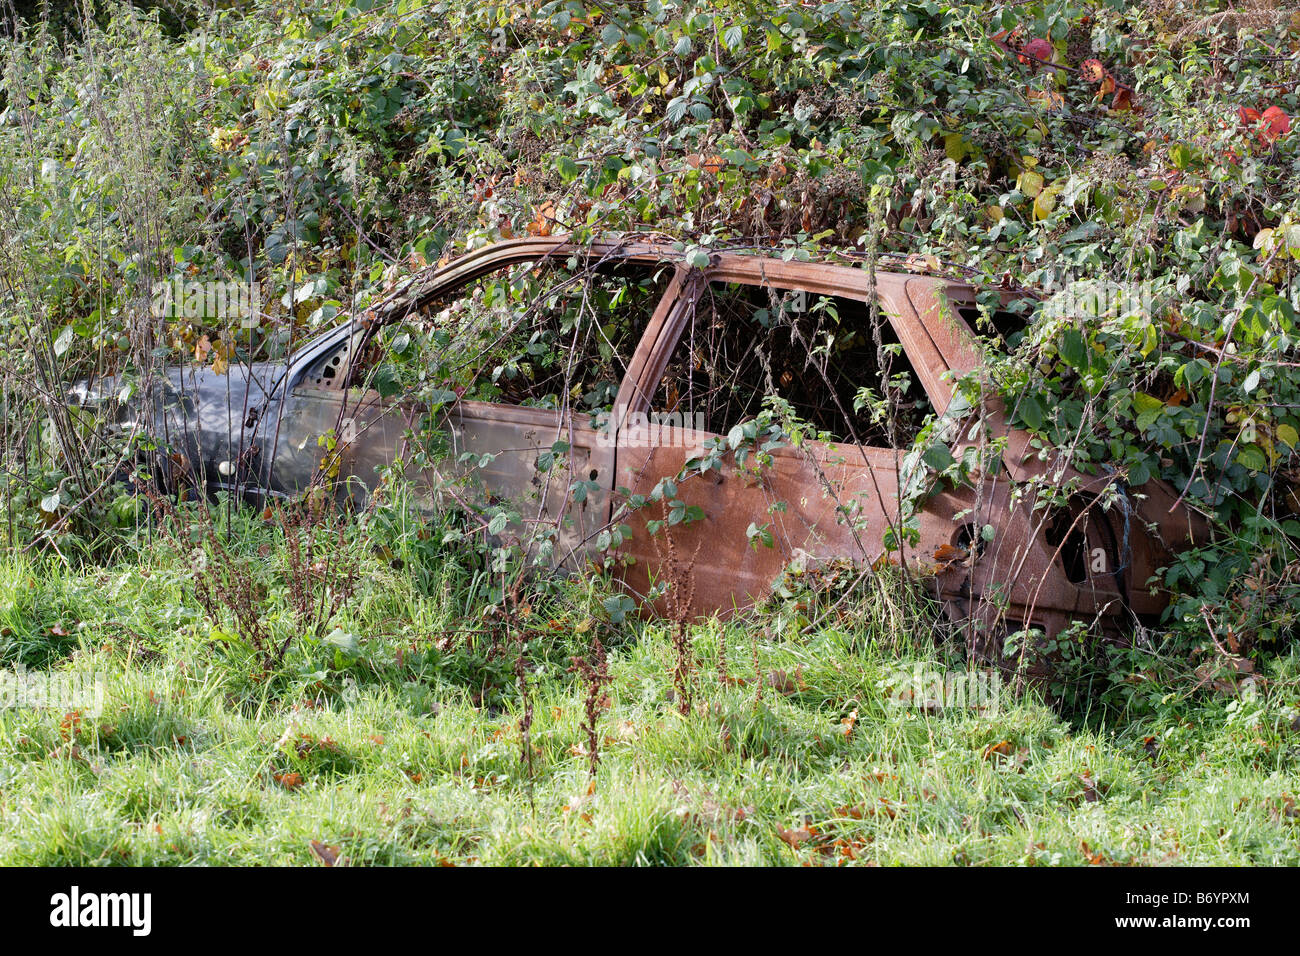 Abandoned car rusting in the hedgerow - Stock Image